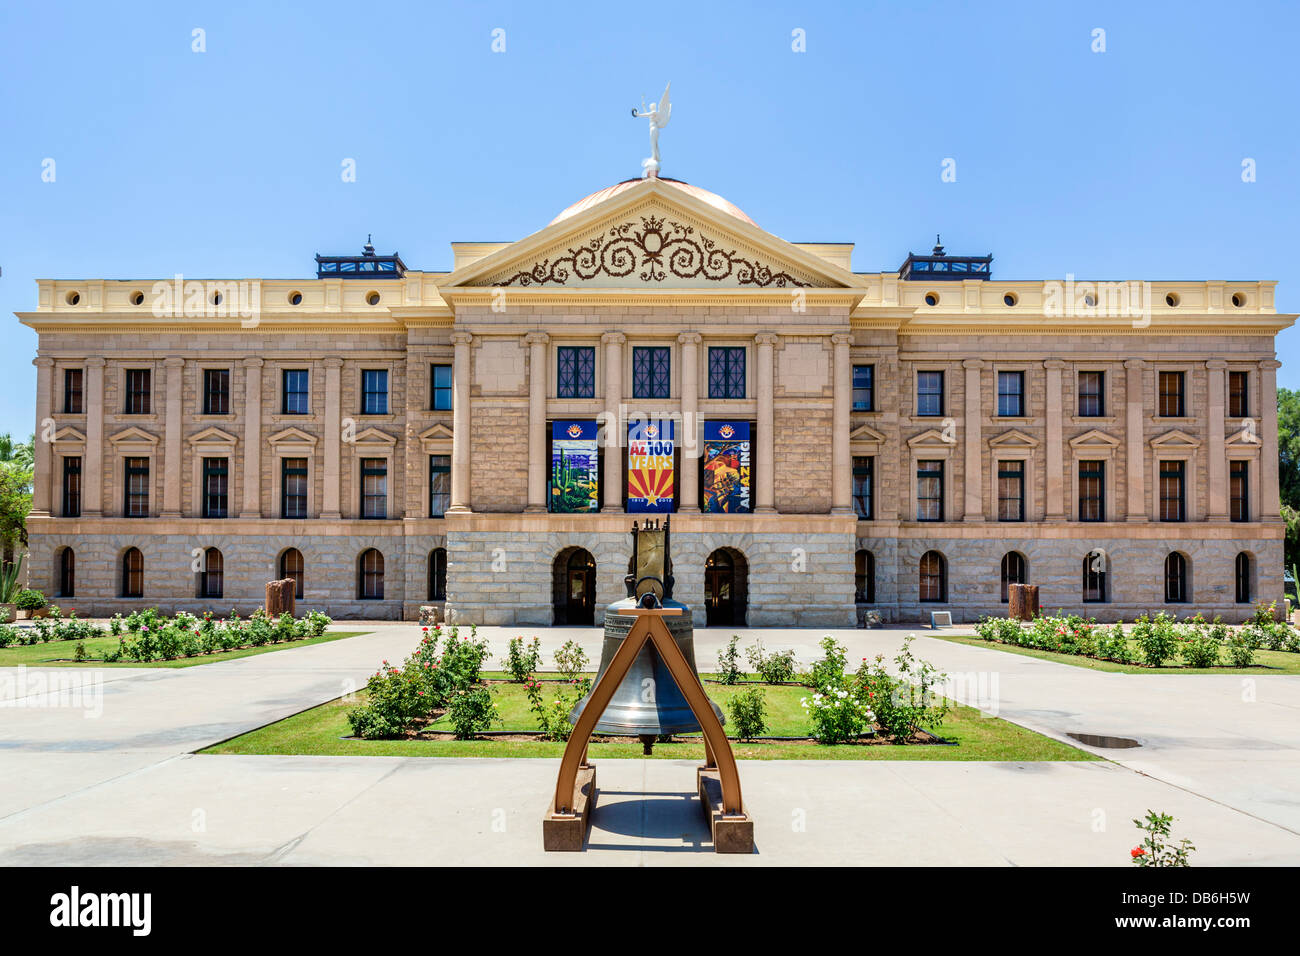 Le Arizona State Capitol building, Phoenix, Arizona, USA Photo Stock